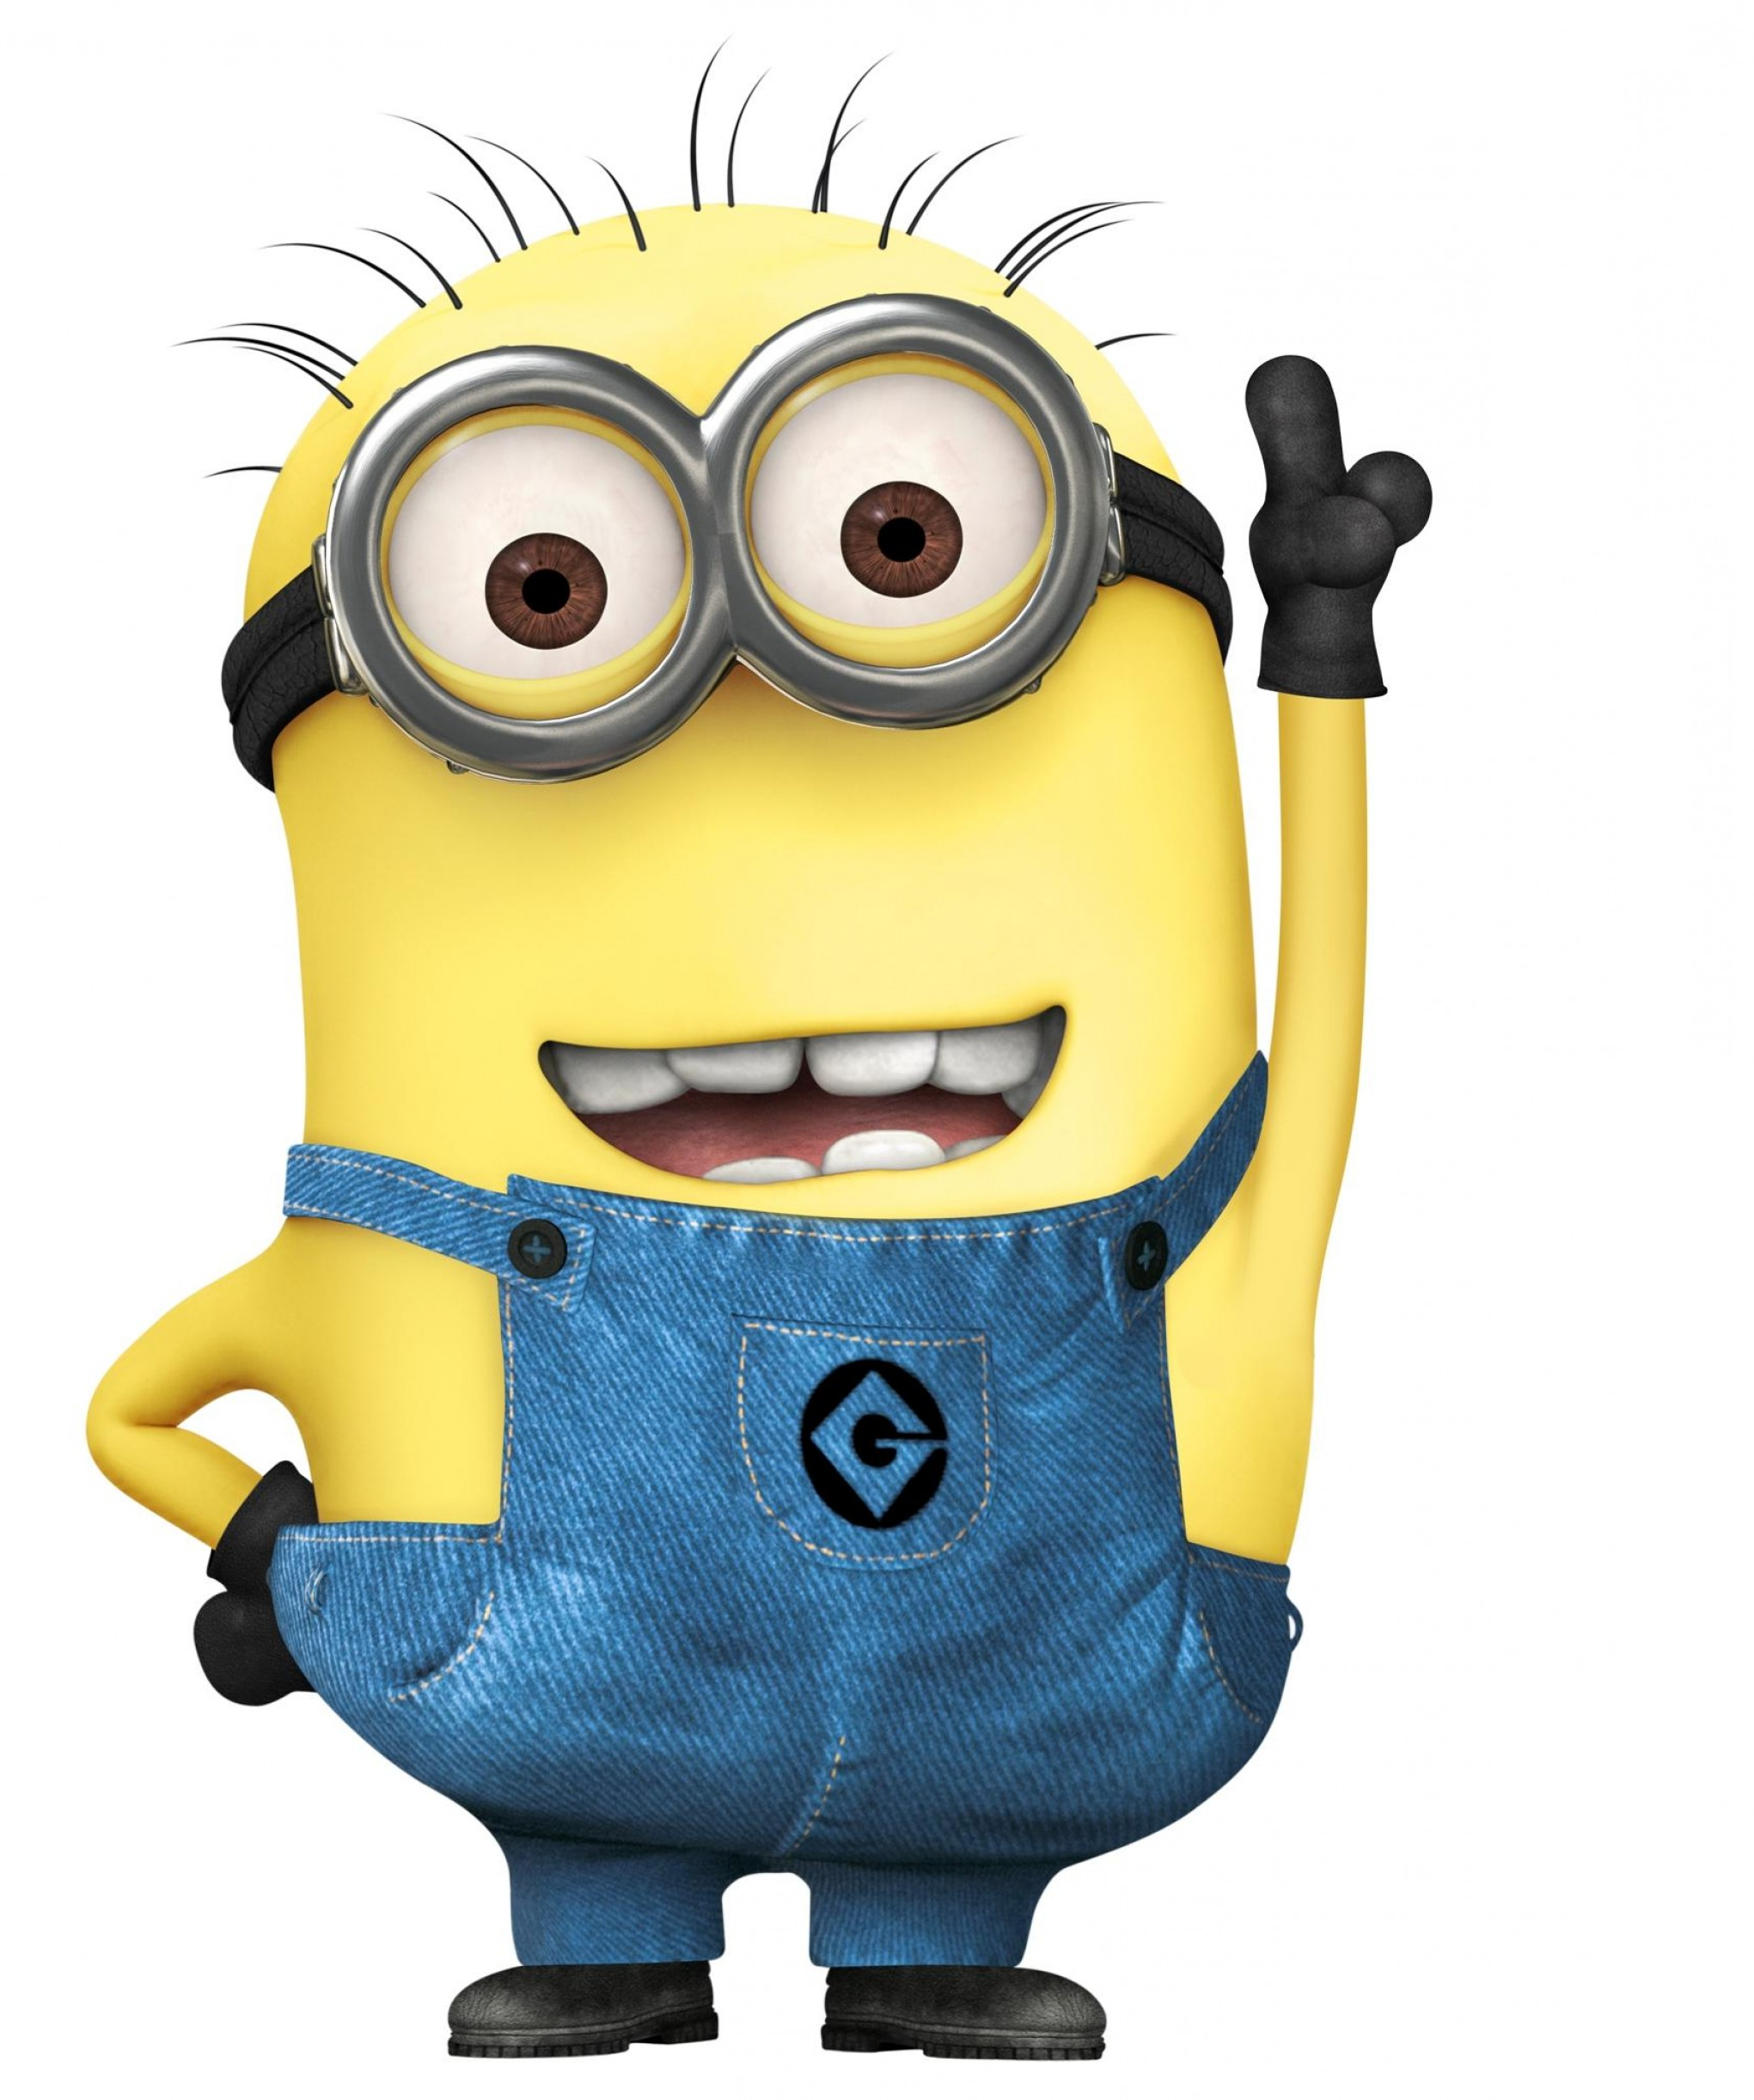 despicable me 2 clipart at getdrawings com free for personal use rh getdrawings com despicable me 3 clip art agnes despicable me clip art